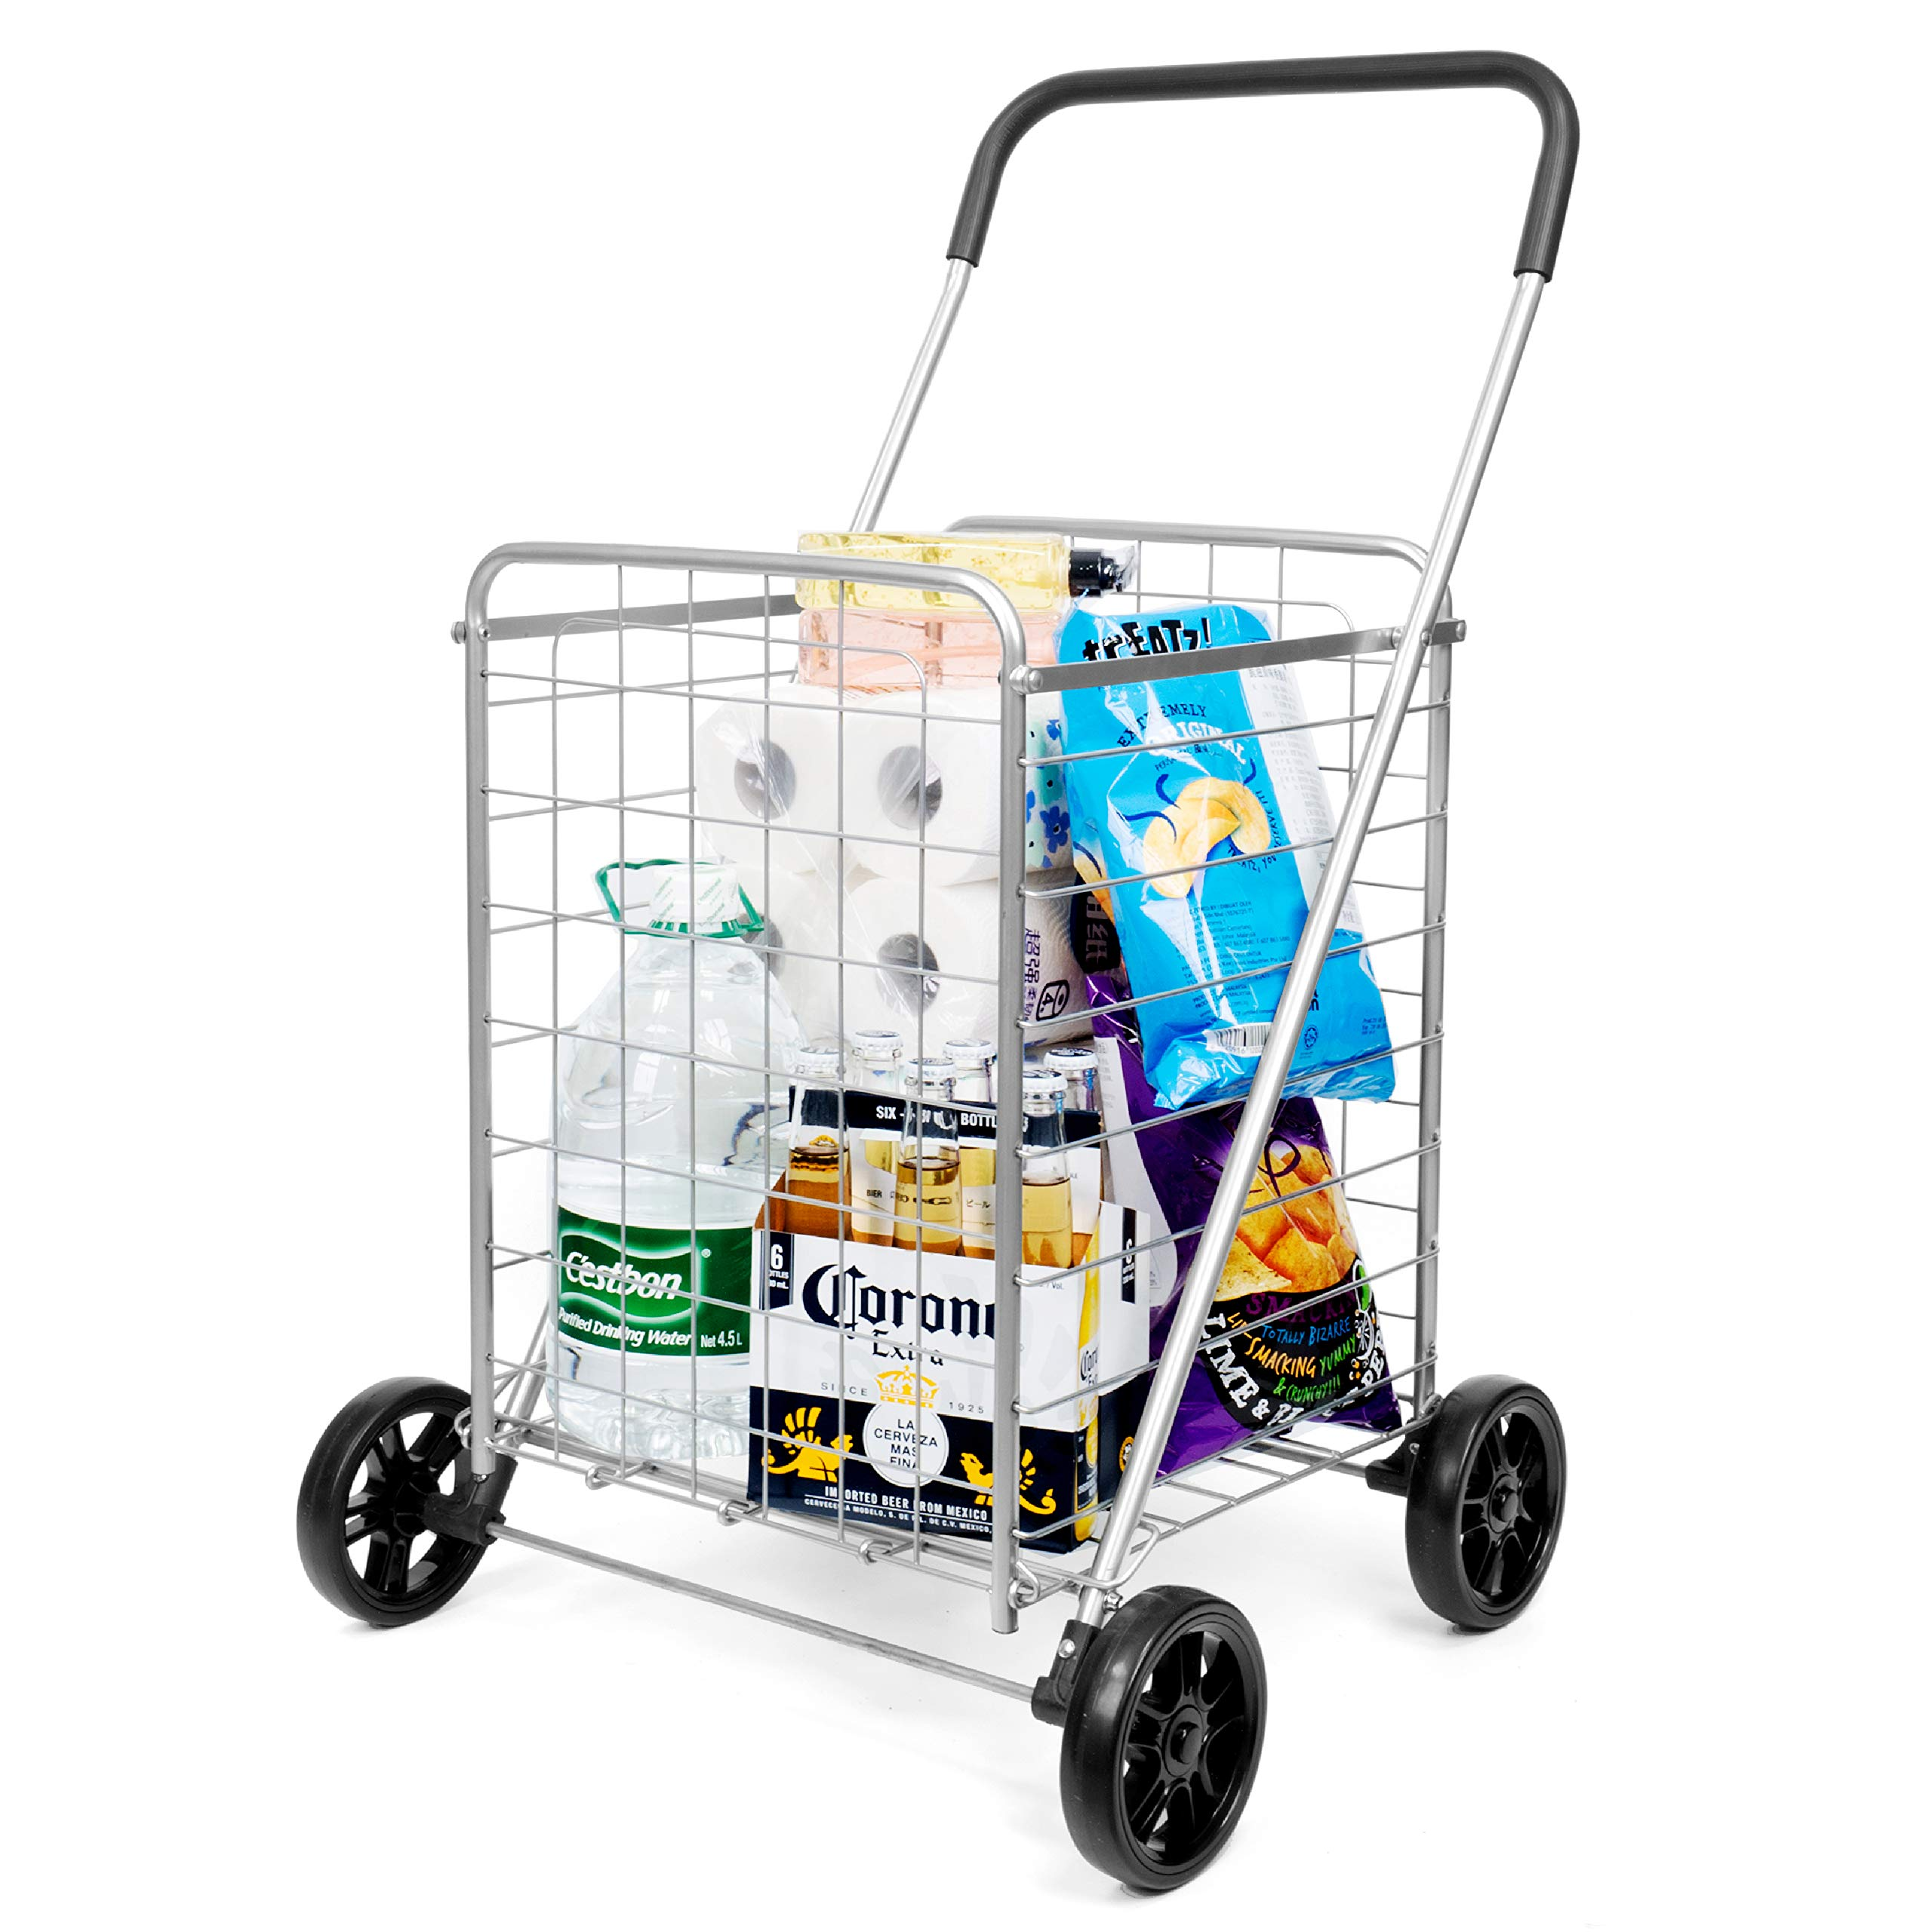 SUPENICE SN7511 Durable Folding Grocery Utility Shopping Cart with Oversized Wheels Laundry Basket, Save Space Light Weight, Tool Free Installation Utility Cart for Shopping, Laundry by supenice